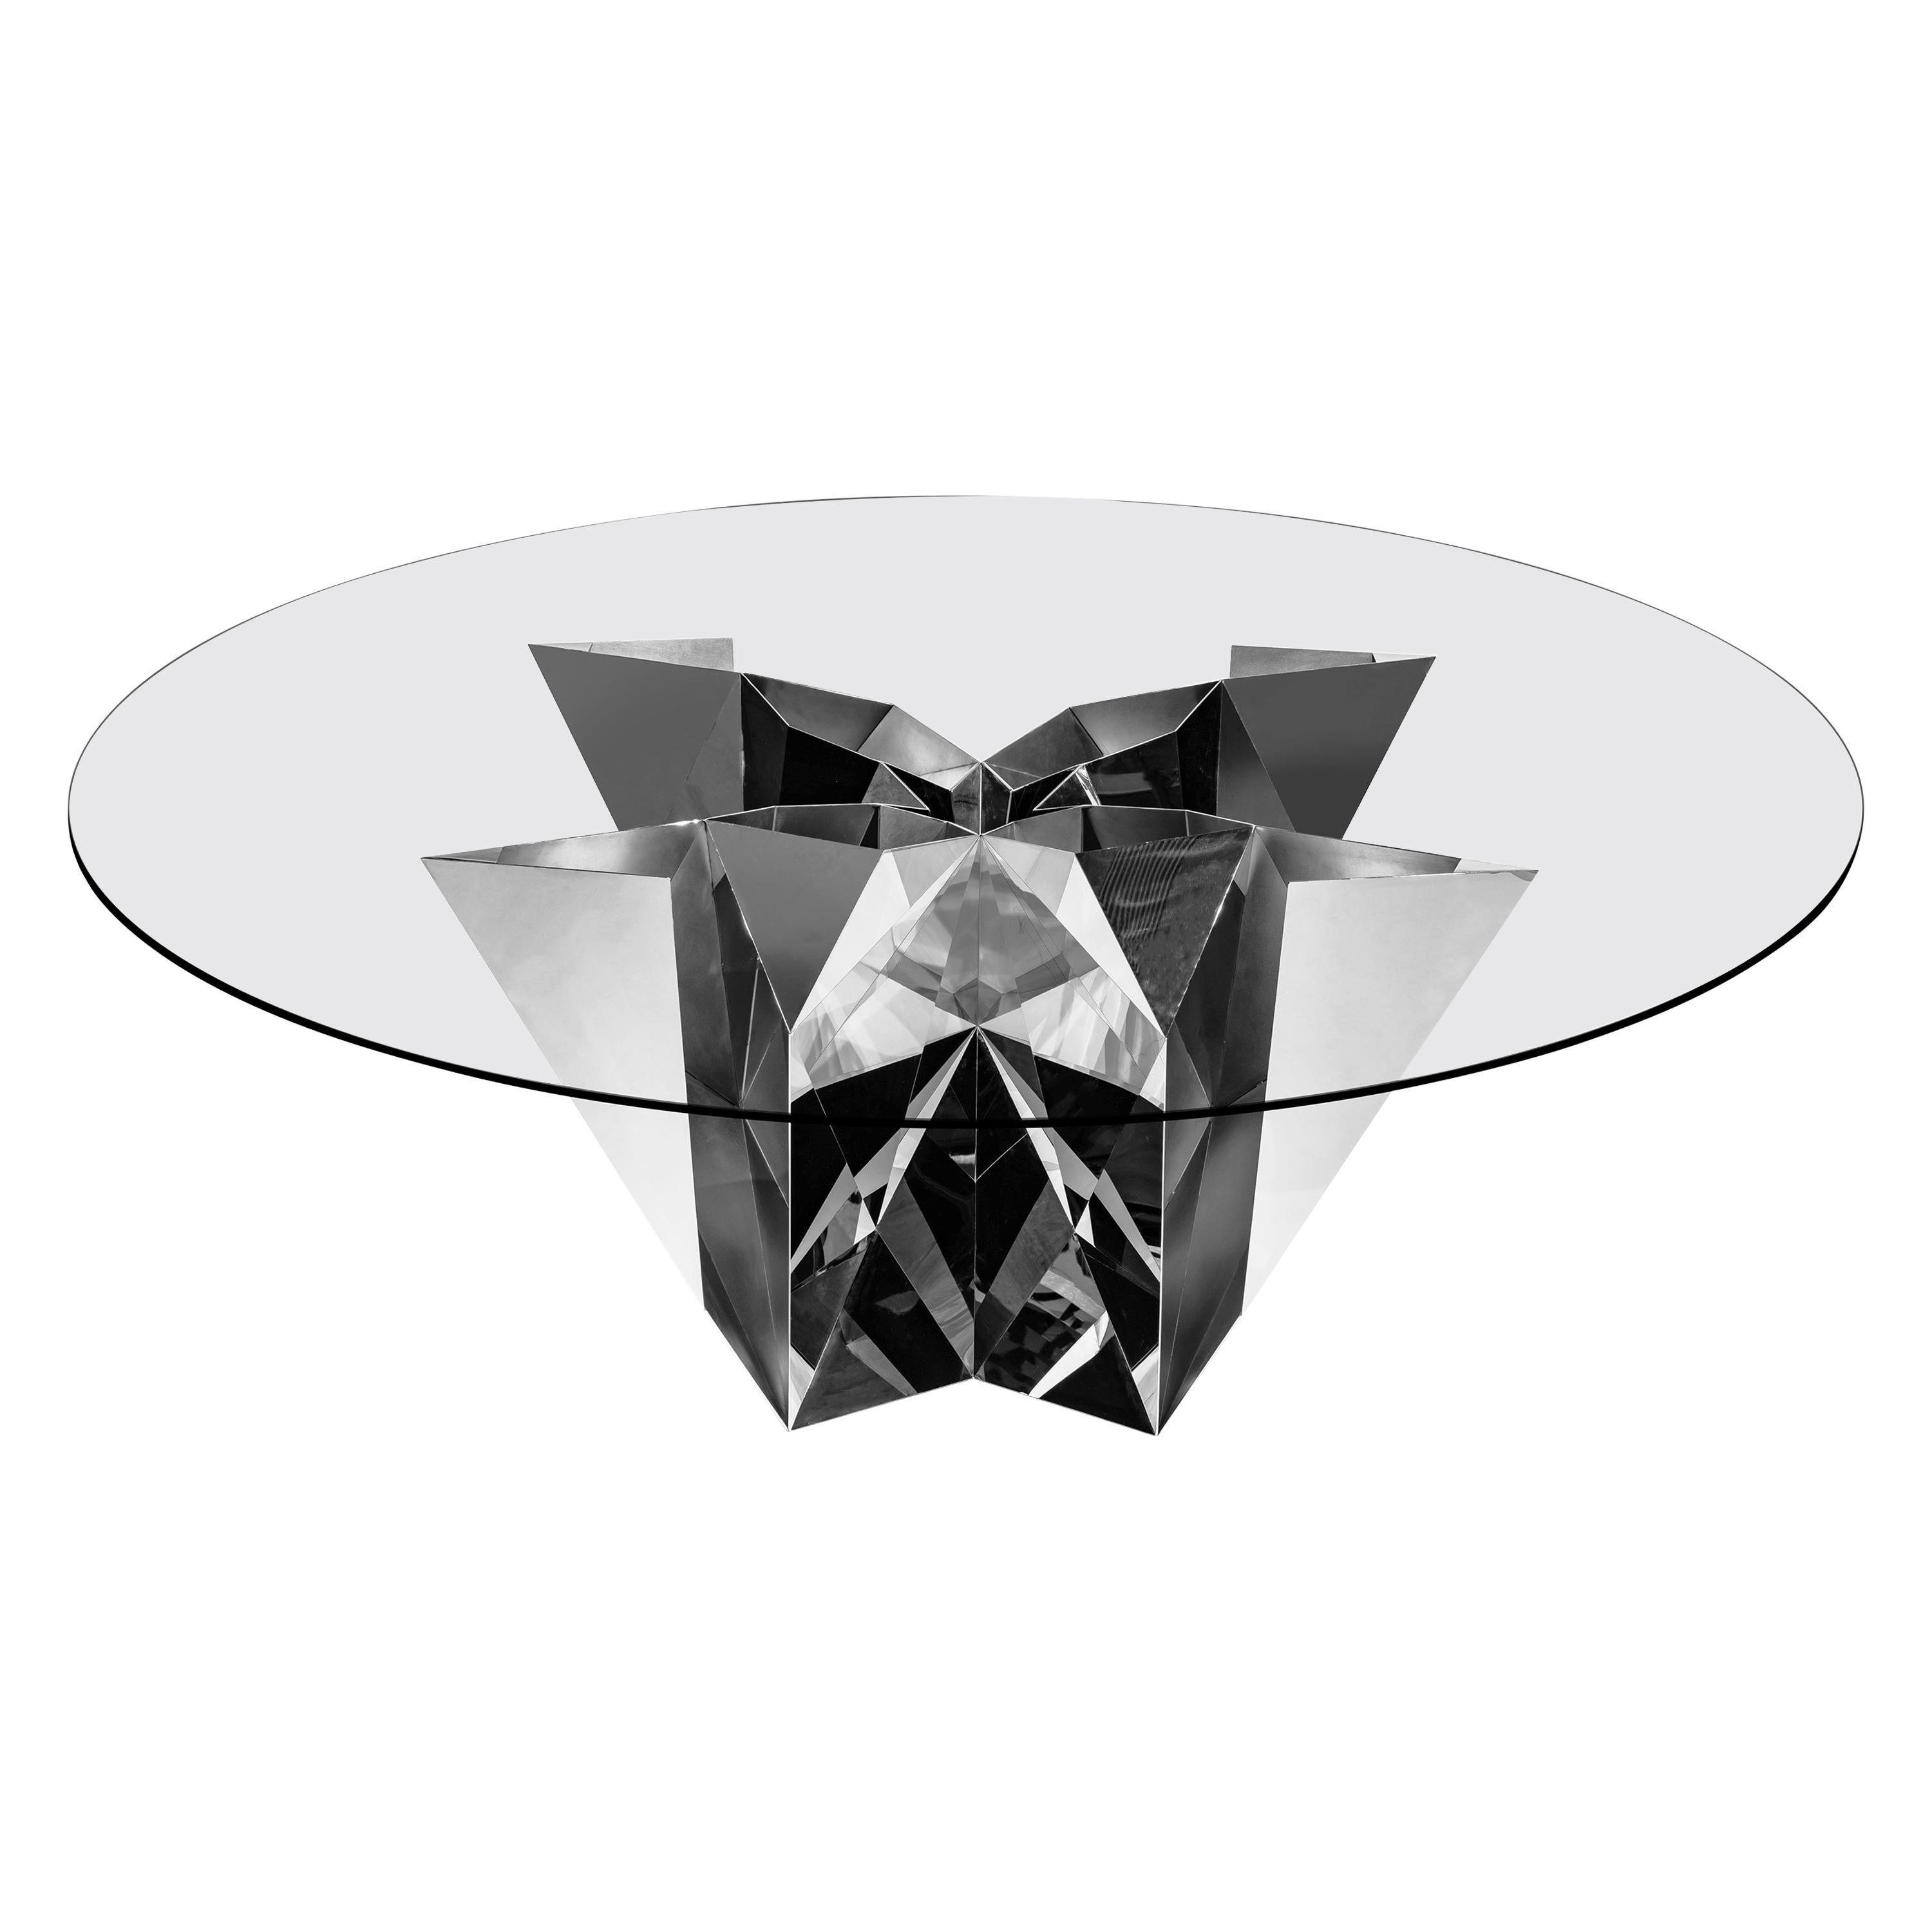 Object #MT-F2-S Mirror Polished Stainless Steel Table by Zhoujie Zhang